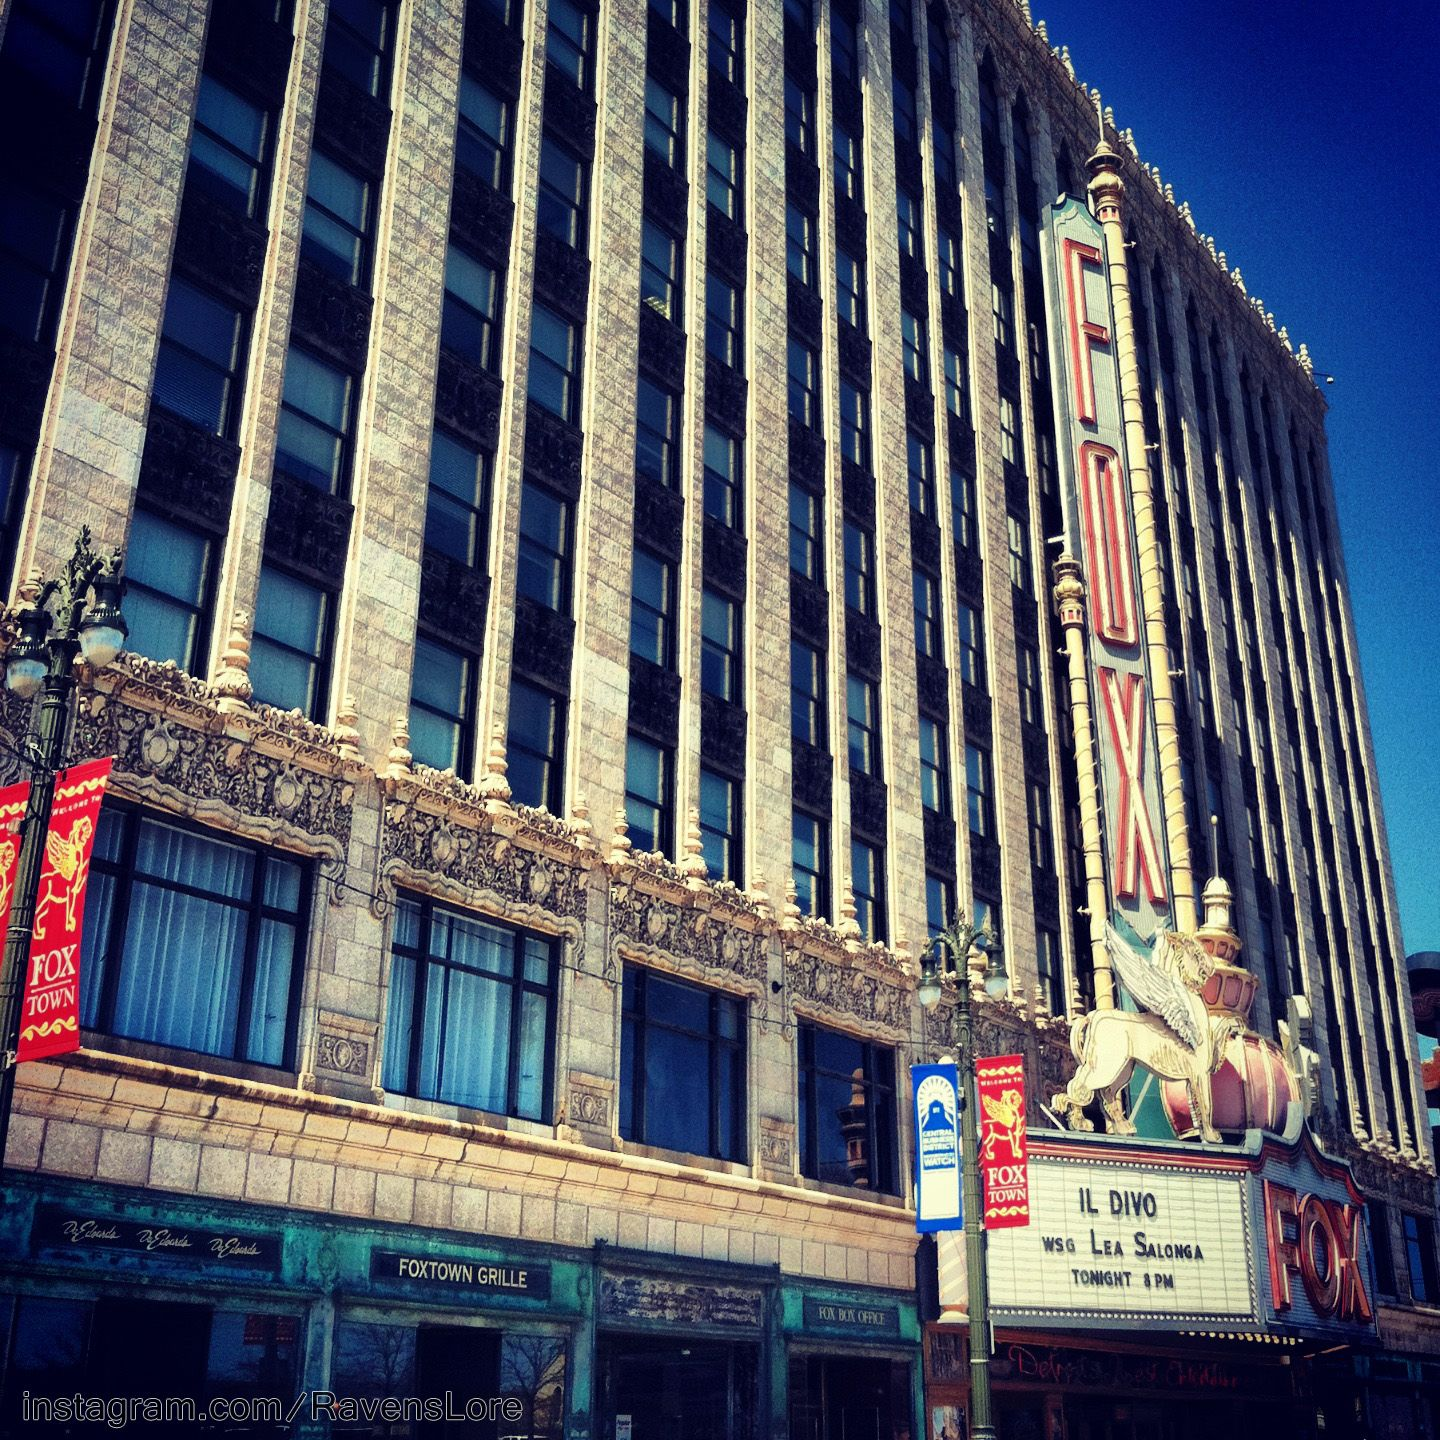 Fox theater facade detroit michigan with images